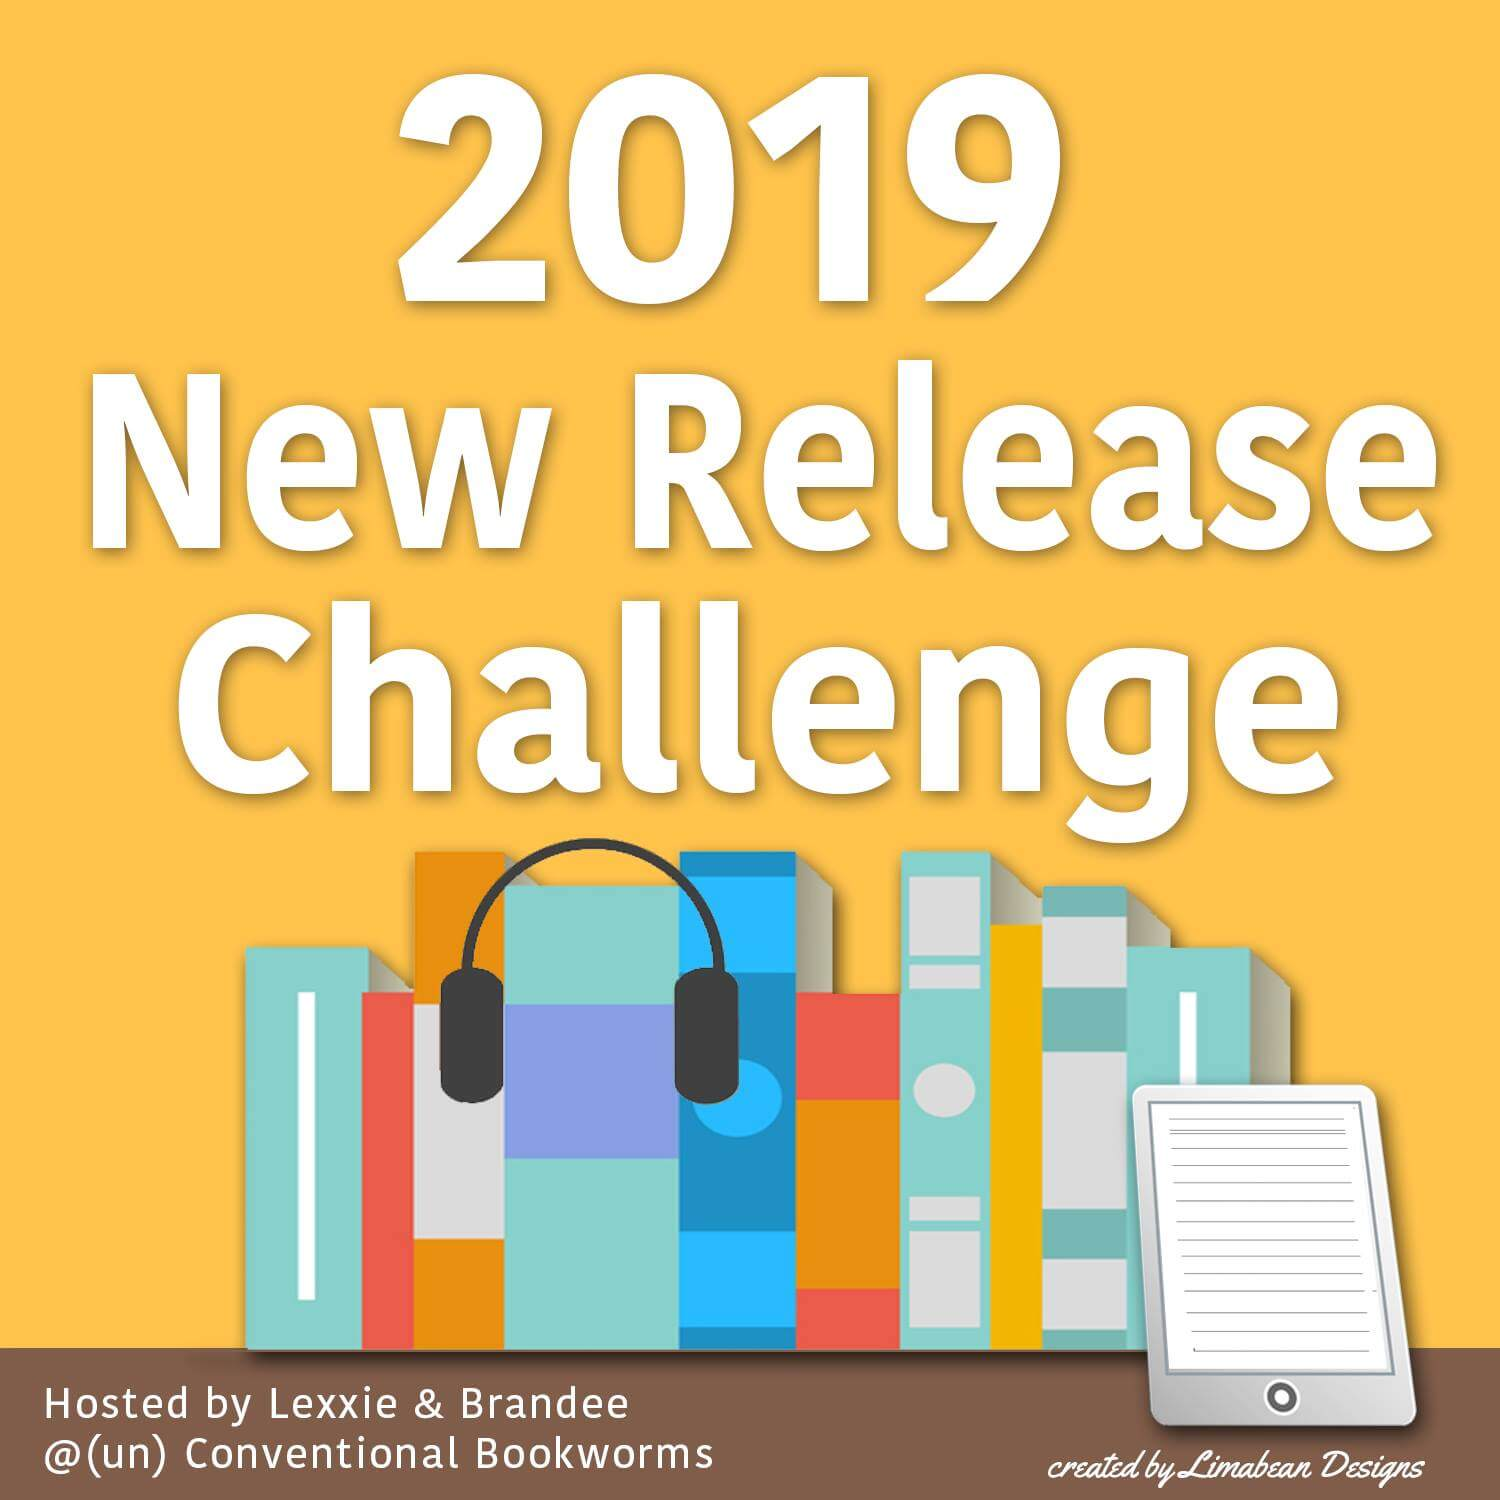 Join the New Release Challenge for 2019